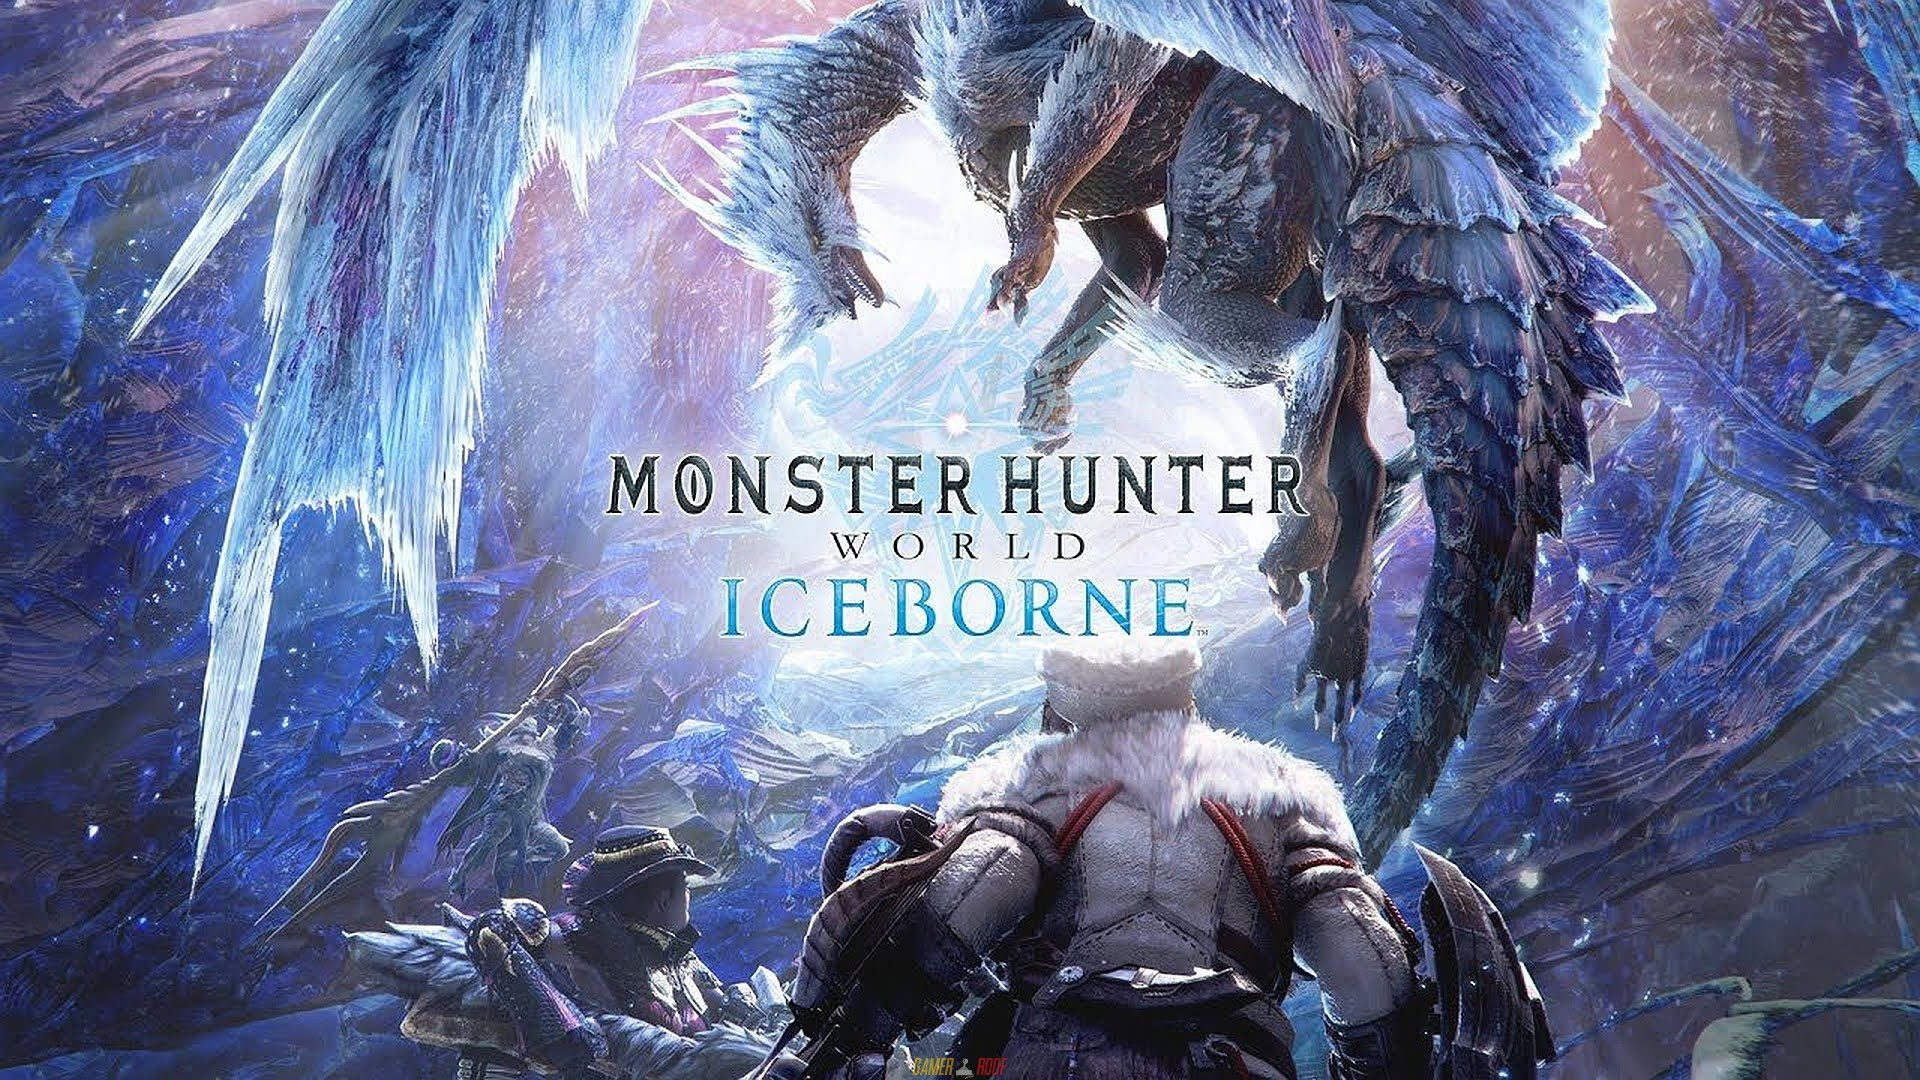 Monster Hunter World Iceborne DLC Xbox One Version Full Free Game Download